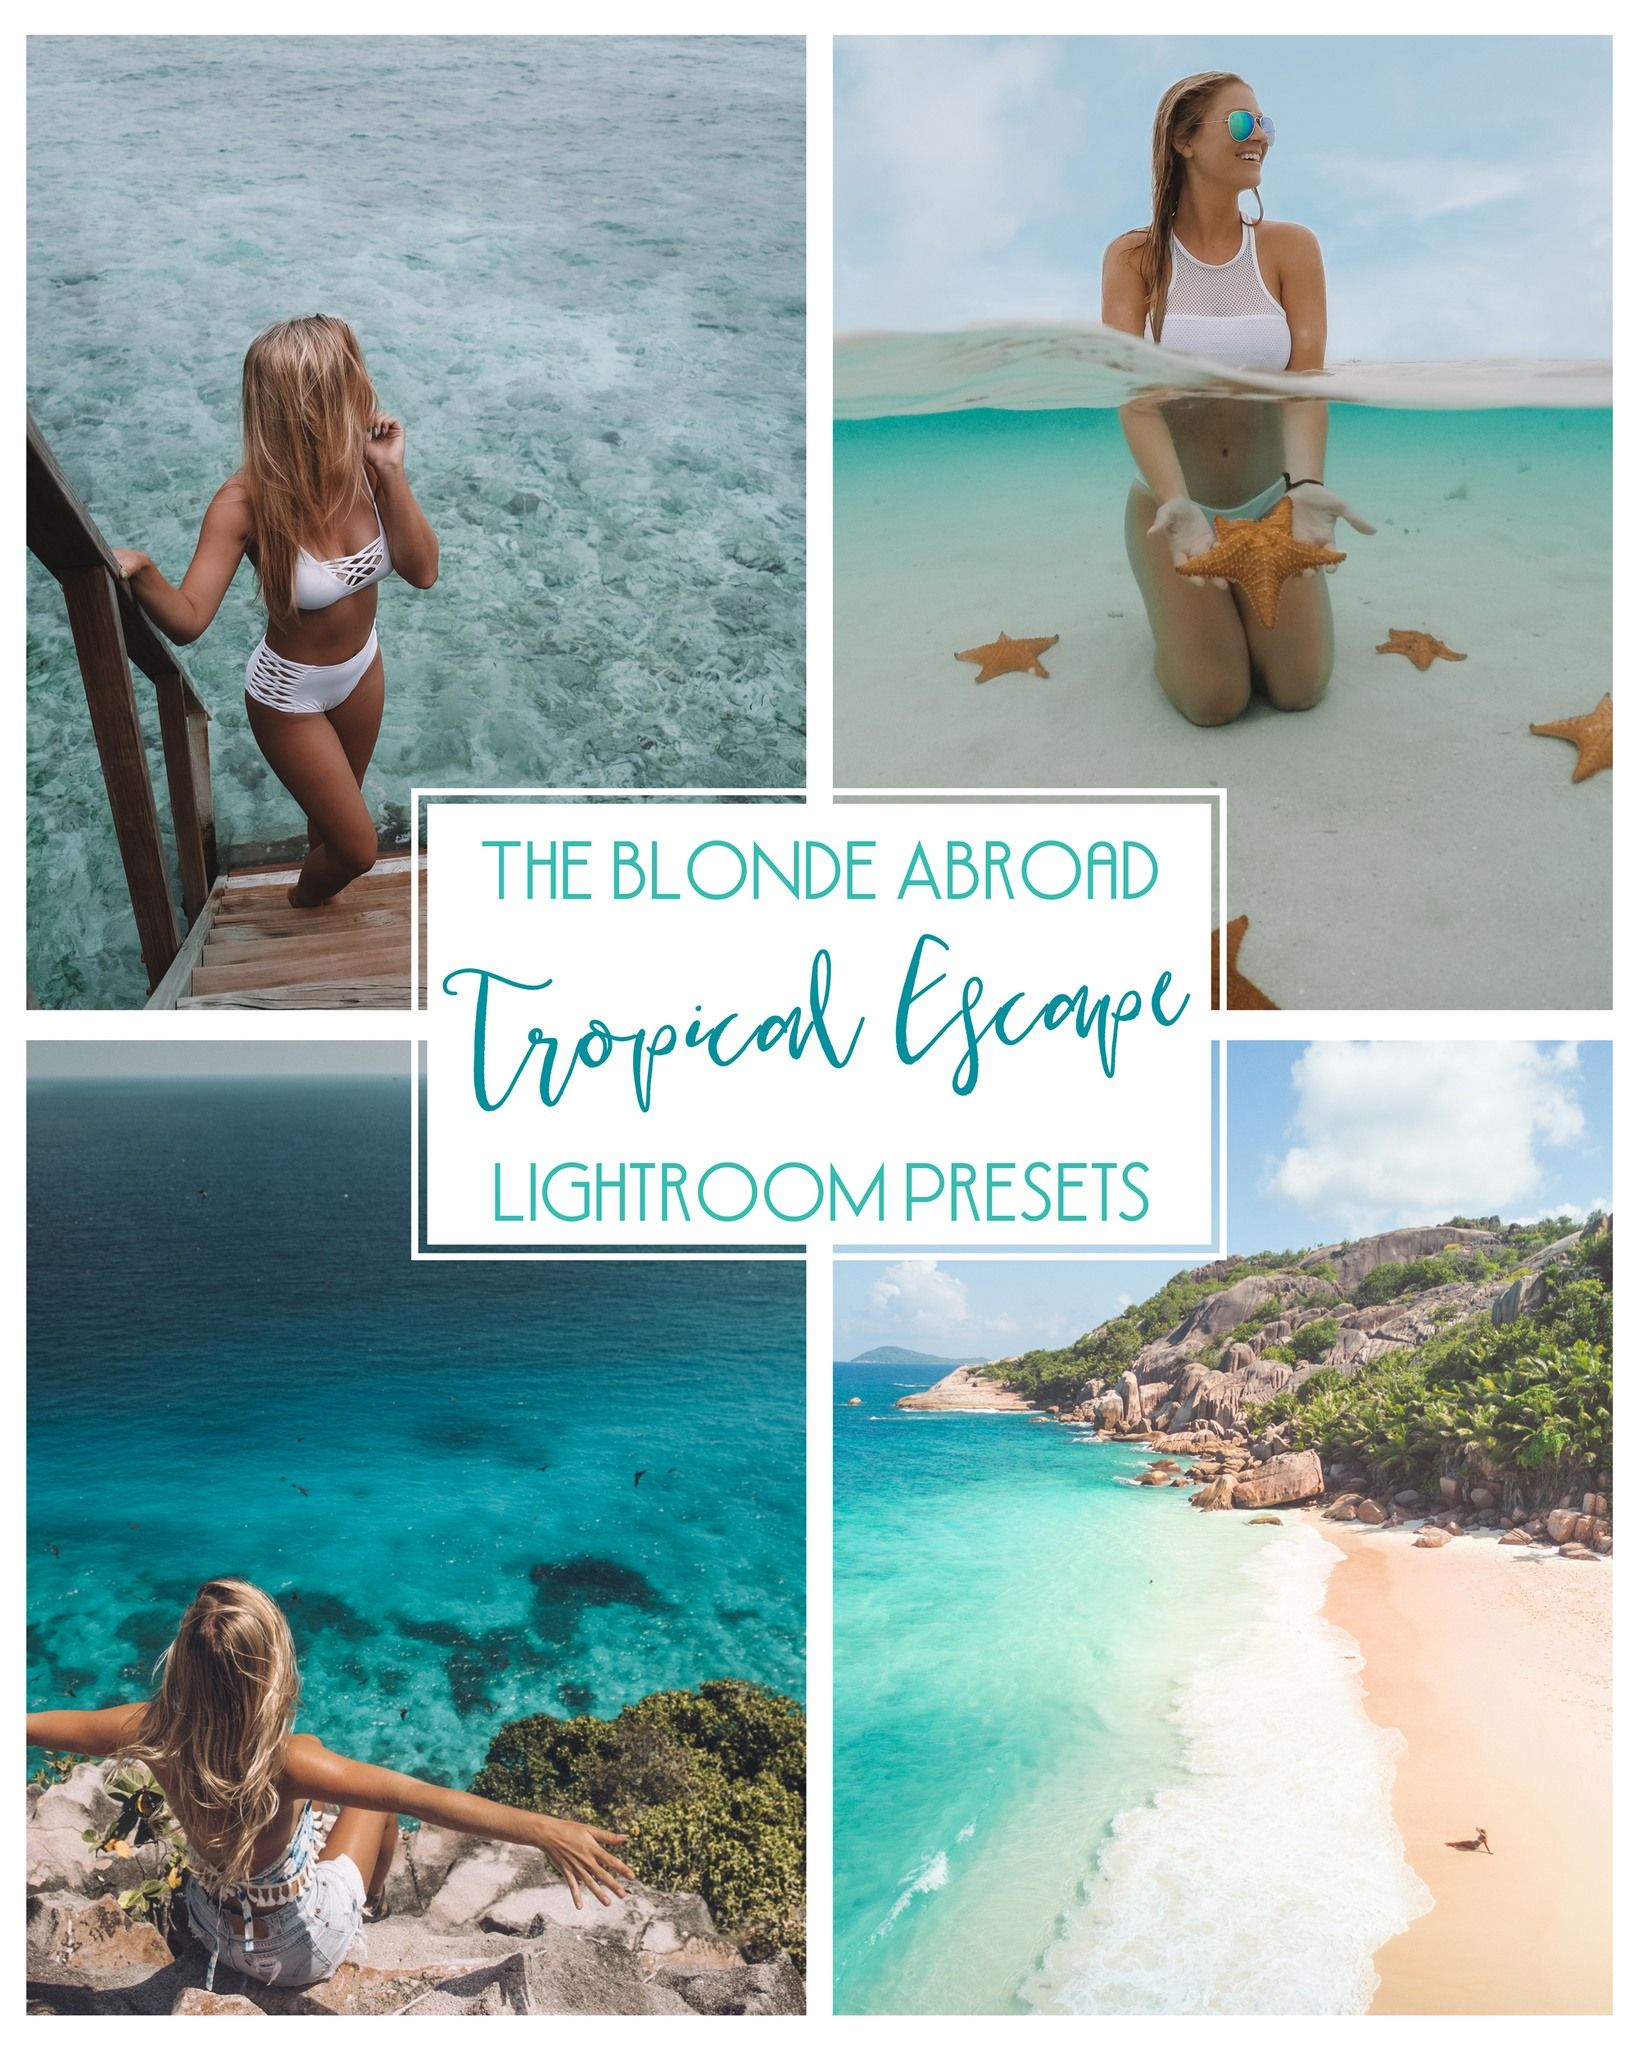 1475e33d1229 The Blonde Abroad Tropical Escapes Lightroom Presets       Travel Photo  Editing